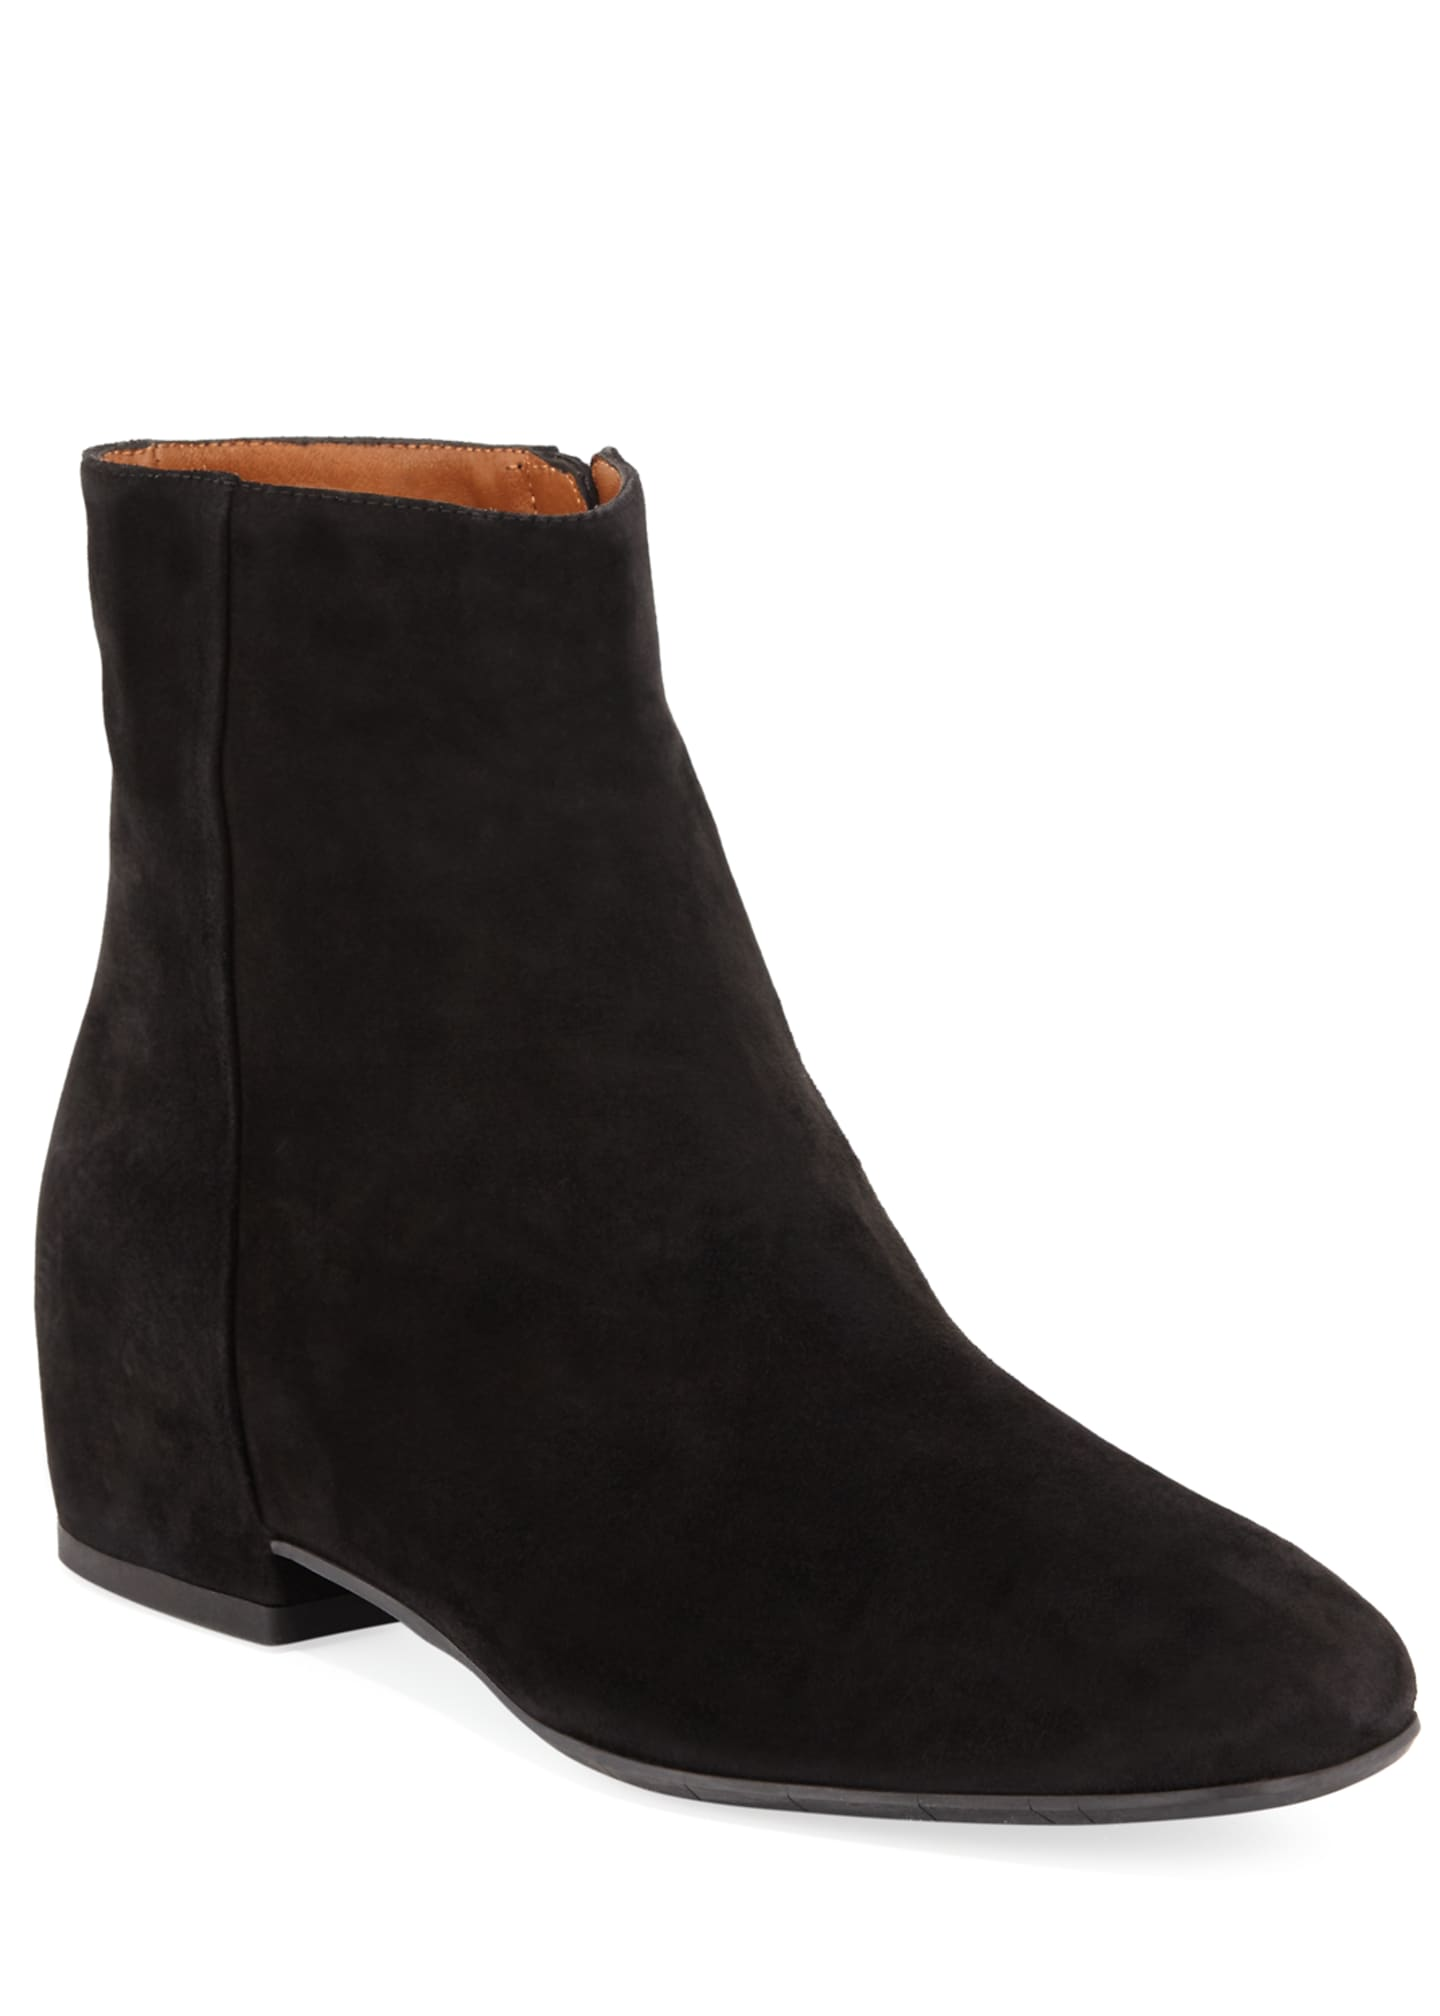 Aquatalia Ulyssa Waterproof Suede Ankle Boots with Hidden